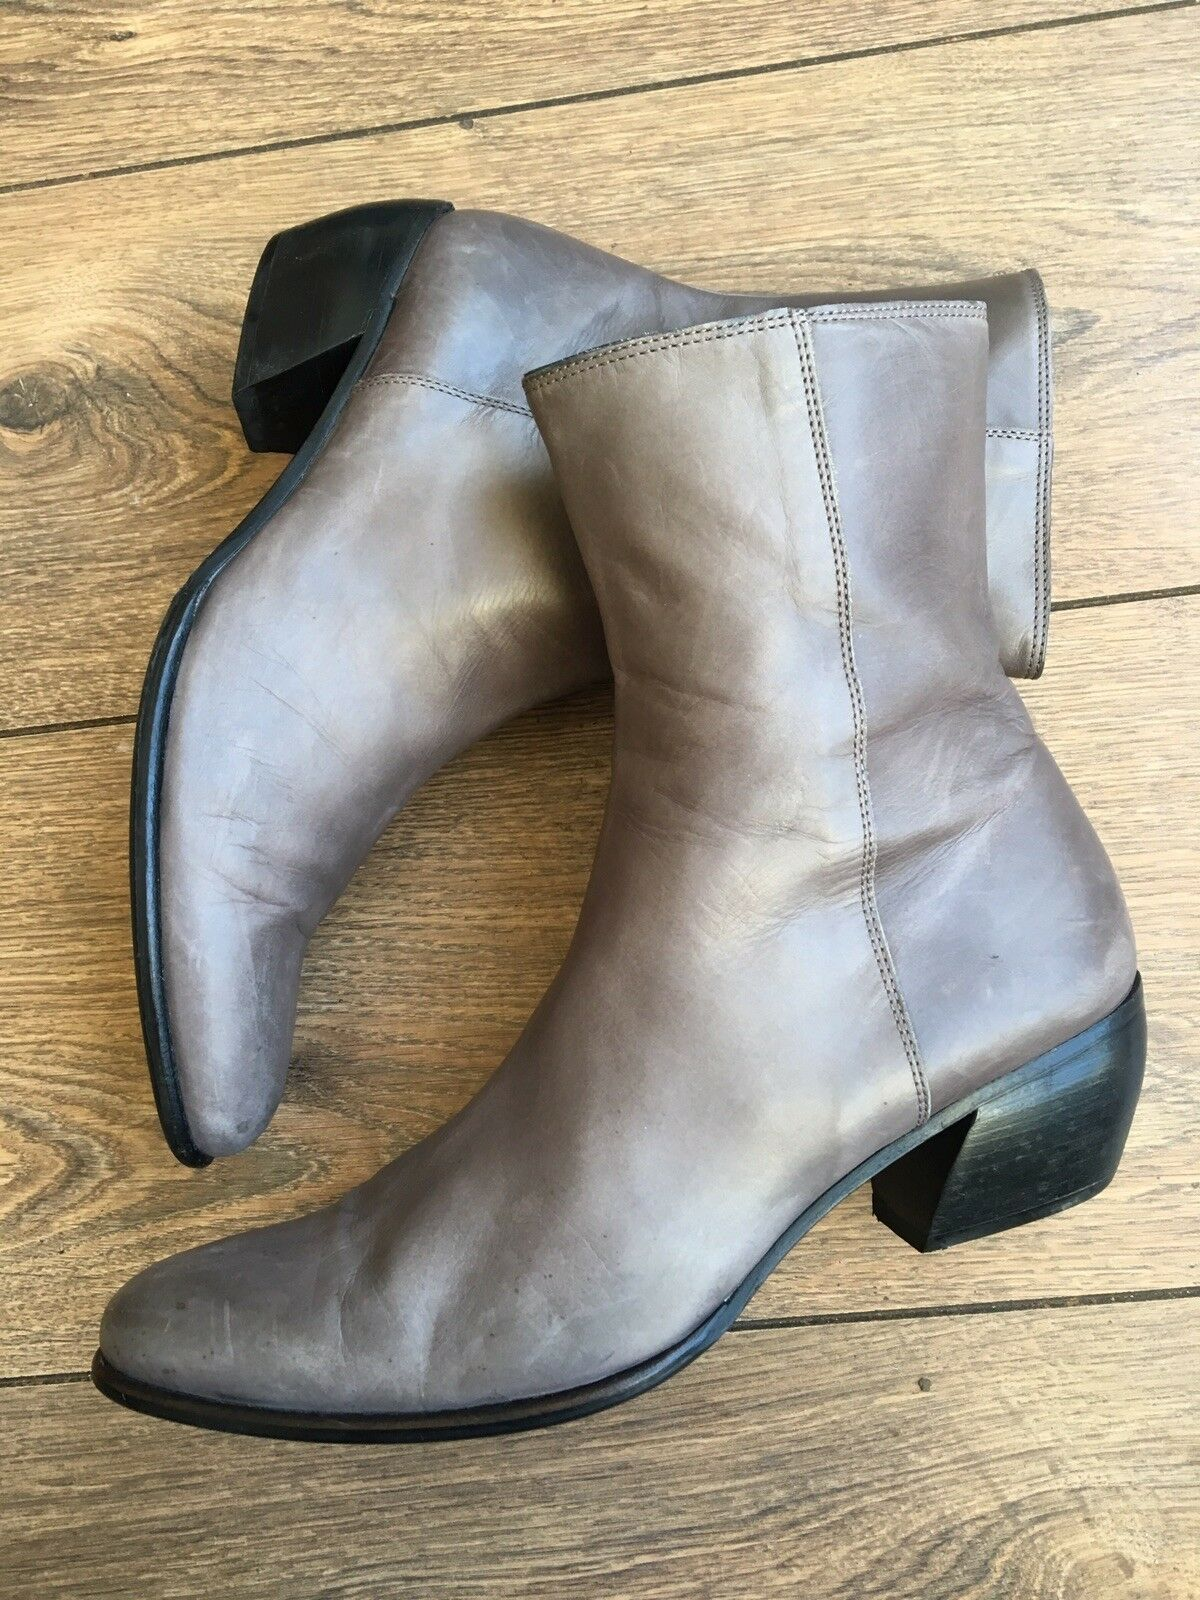 C Doux Designer Italian Grey Leather Chelsea Ankle Boots 5.5 38.5